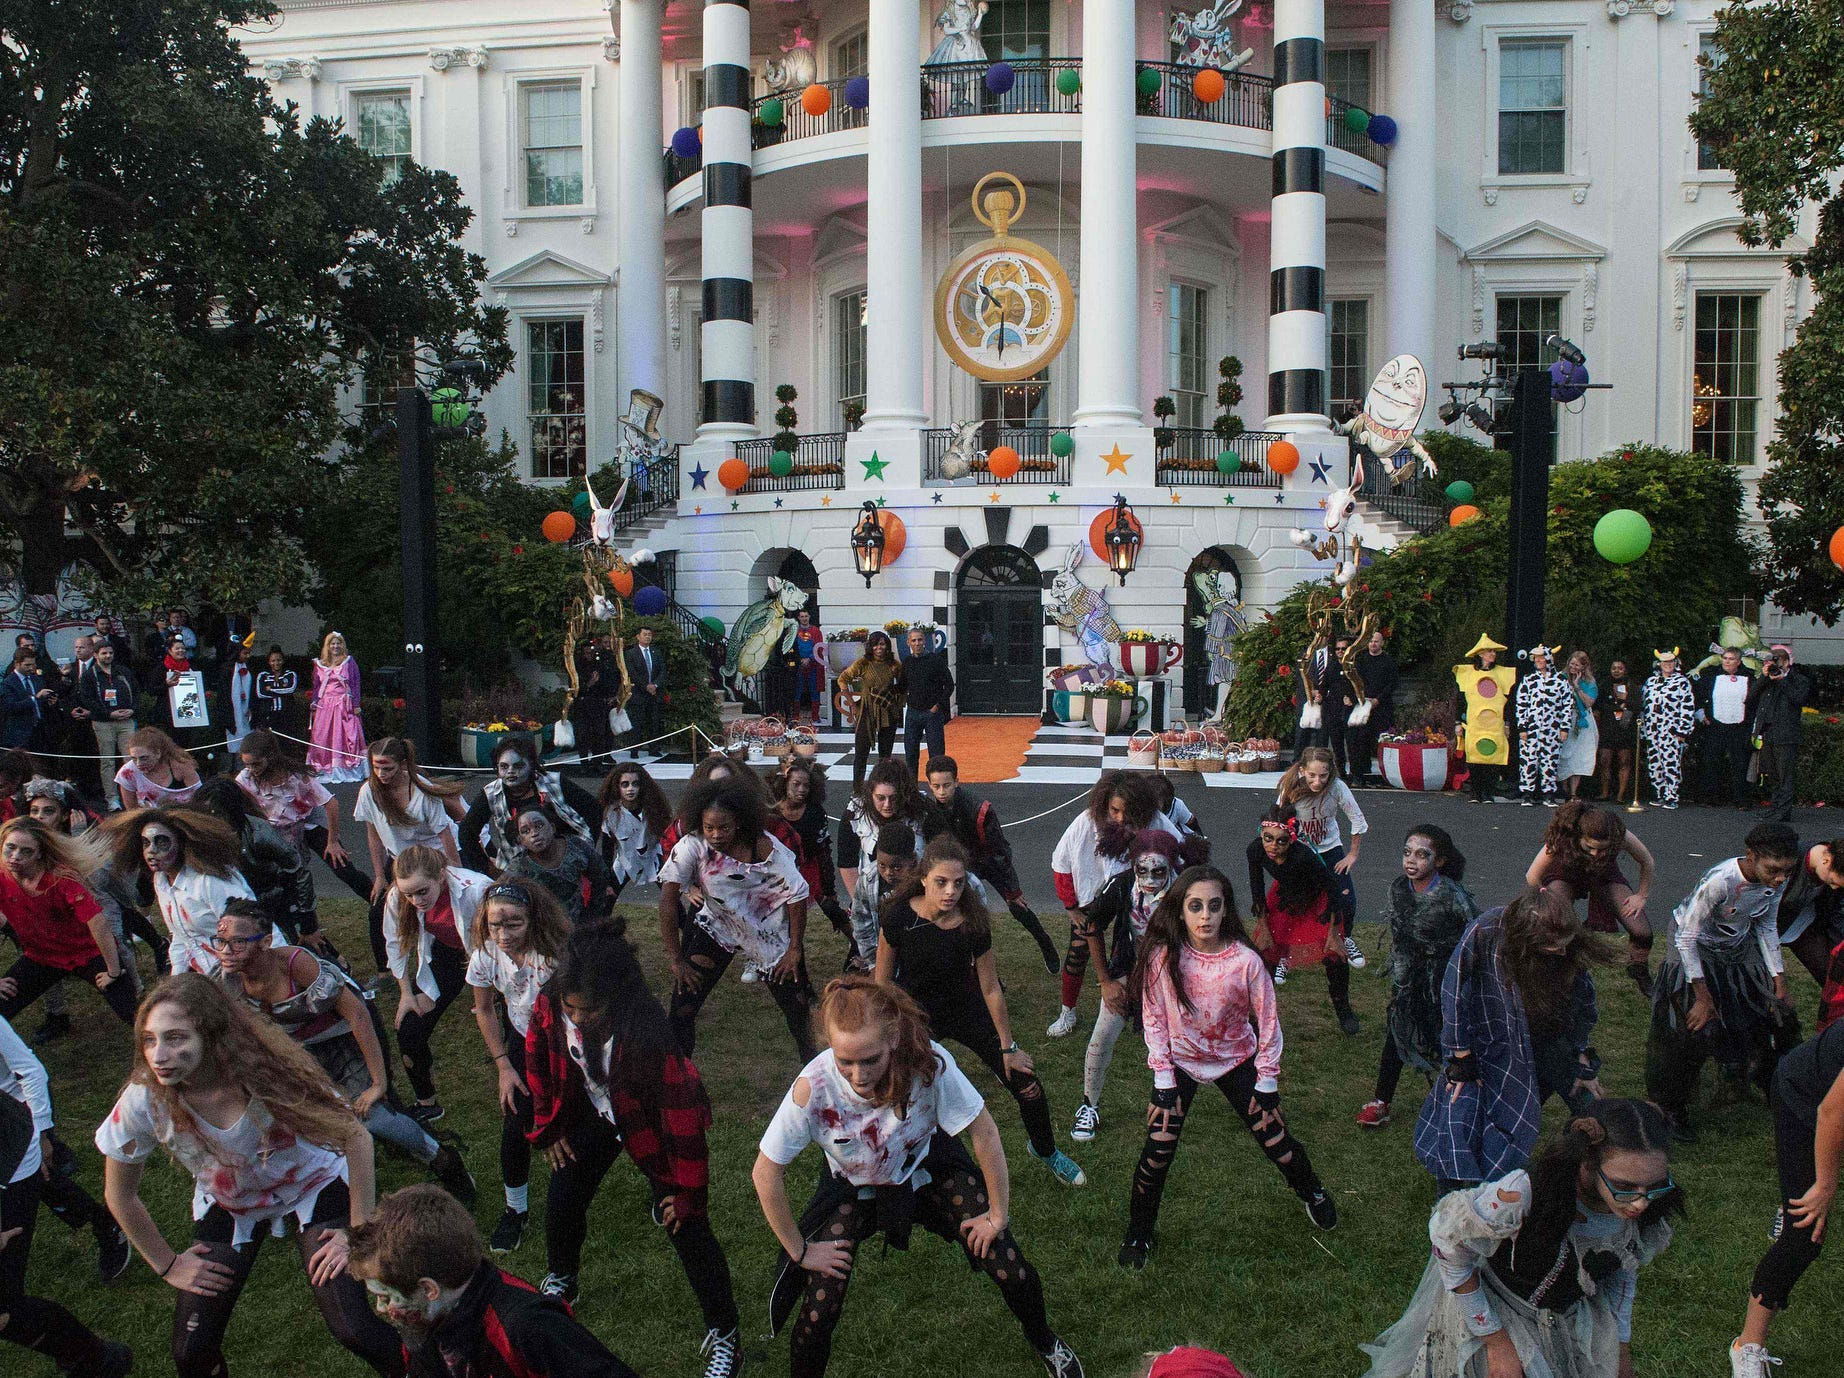 US President Barack Obama and First Lady Michelle Obama watch children perform Michael Jackson'n Thriller on the South Lawn of the White House during a Halloween event in Washington, DC, on October 31, 2016. / AFP PHOTO / NICHOLAS KAMMNICHOLAS KAMM/AFP/Getty Images ORIG FILE ID: AFP_HO15G